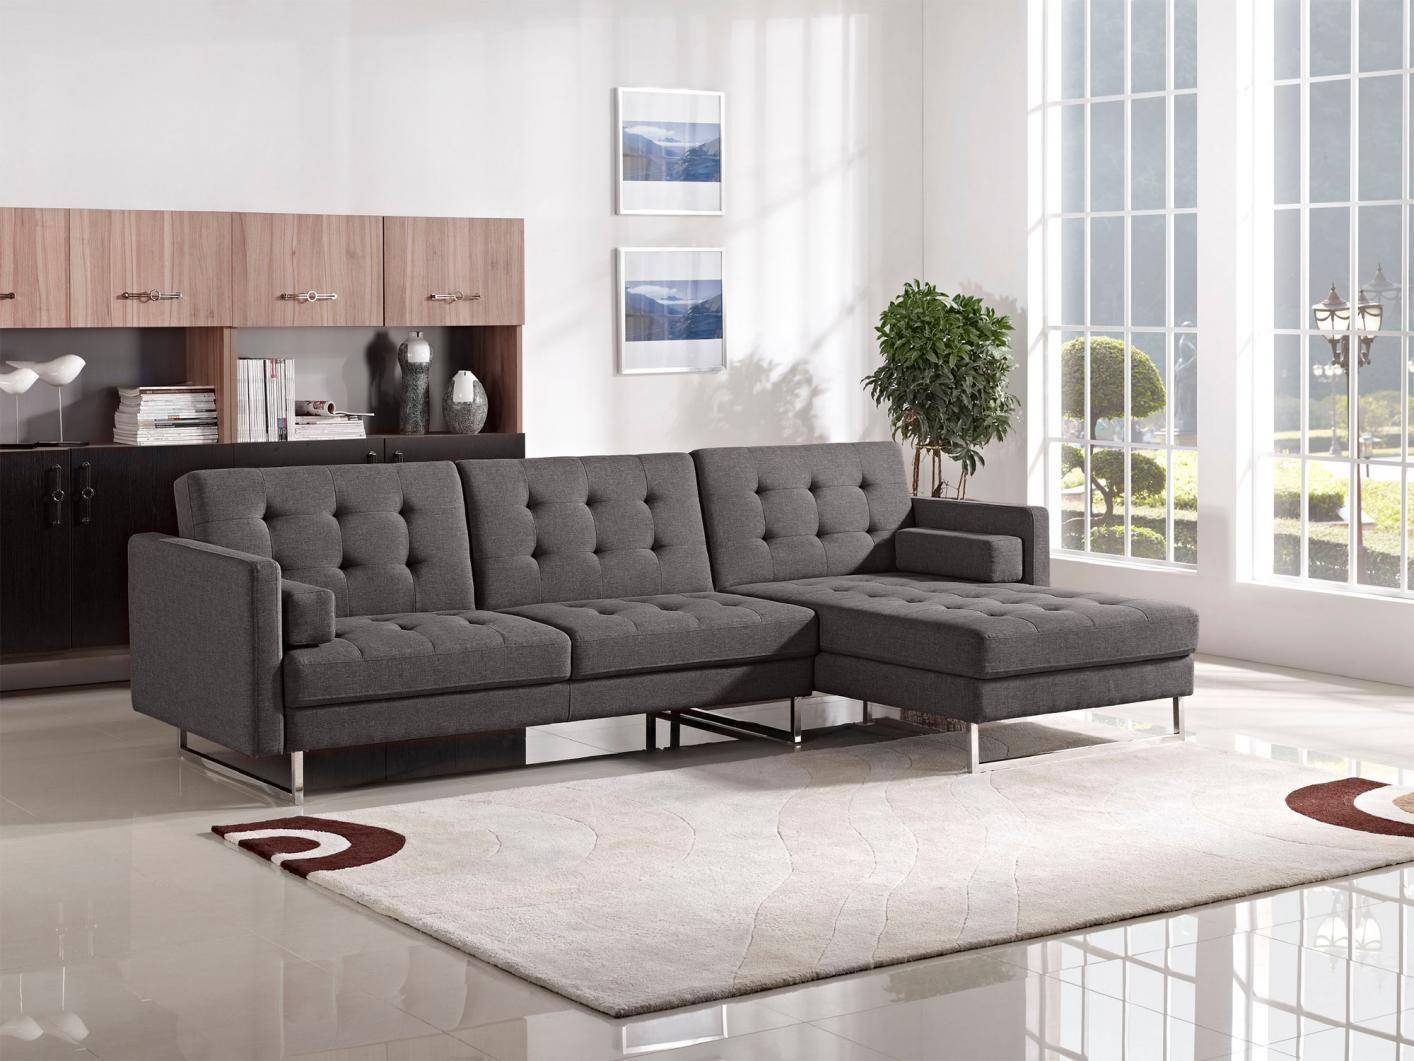 Opus Grey Fabric Sectional Sofa Bed - Steal-A-Sofa Furniture with Fabric Sectional Sofa (Image 23 of 30)